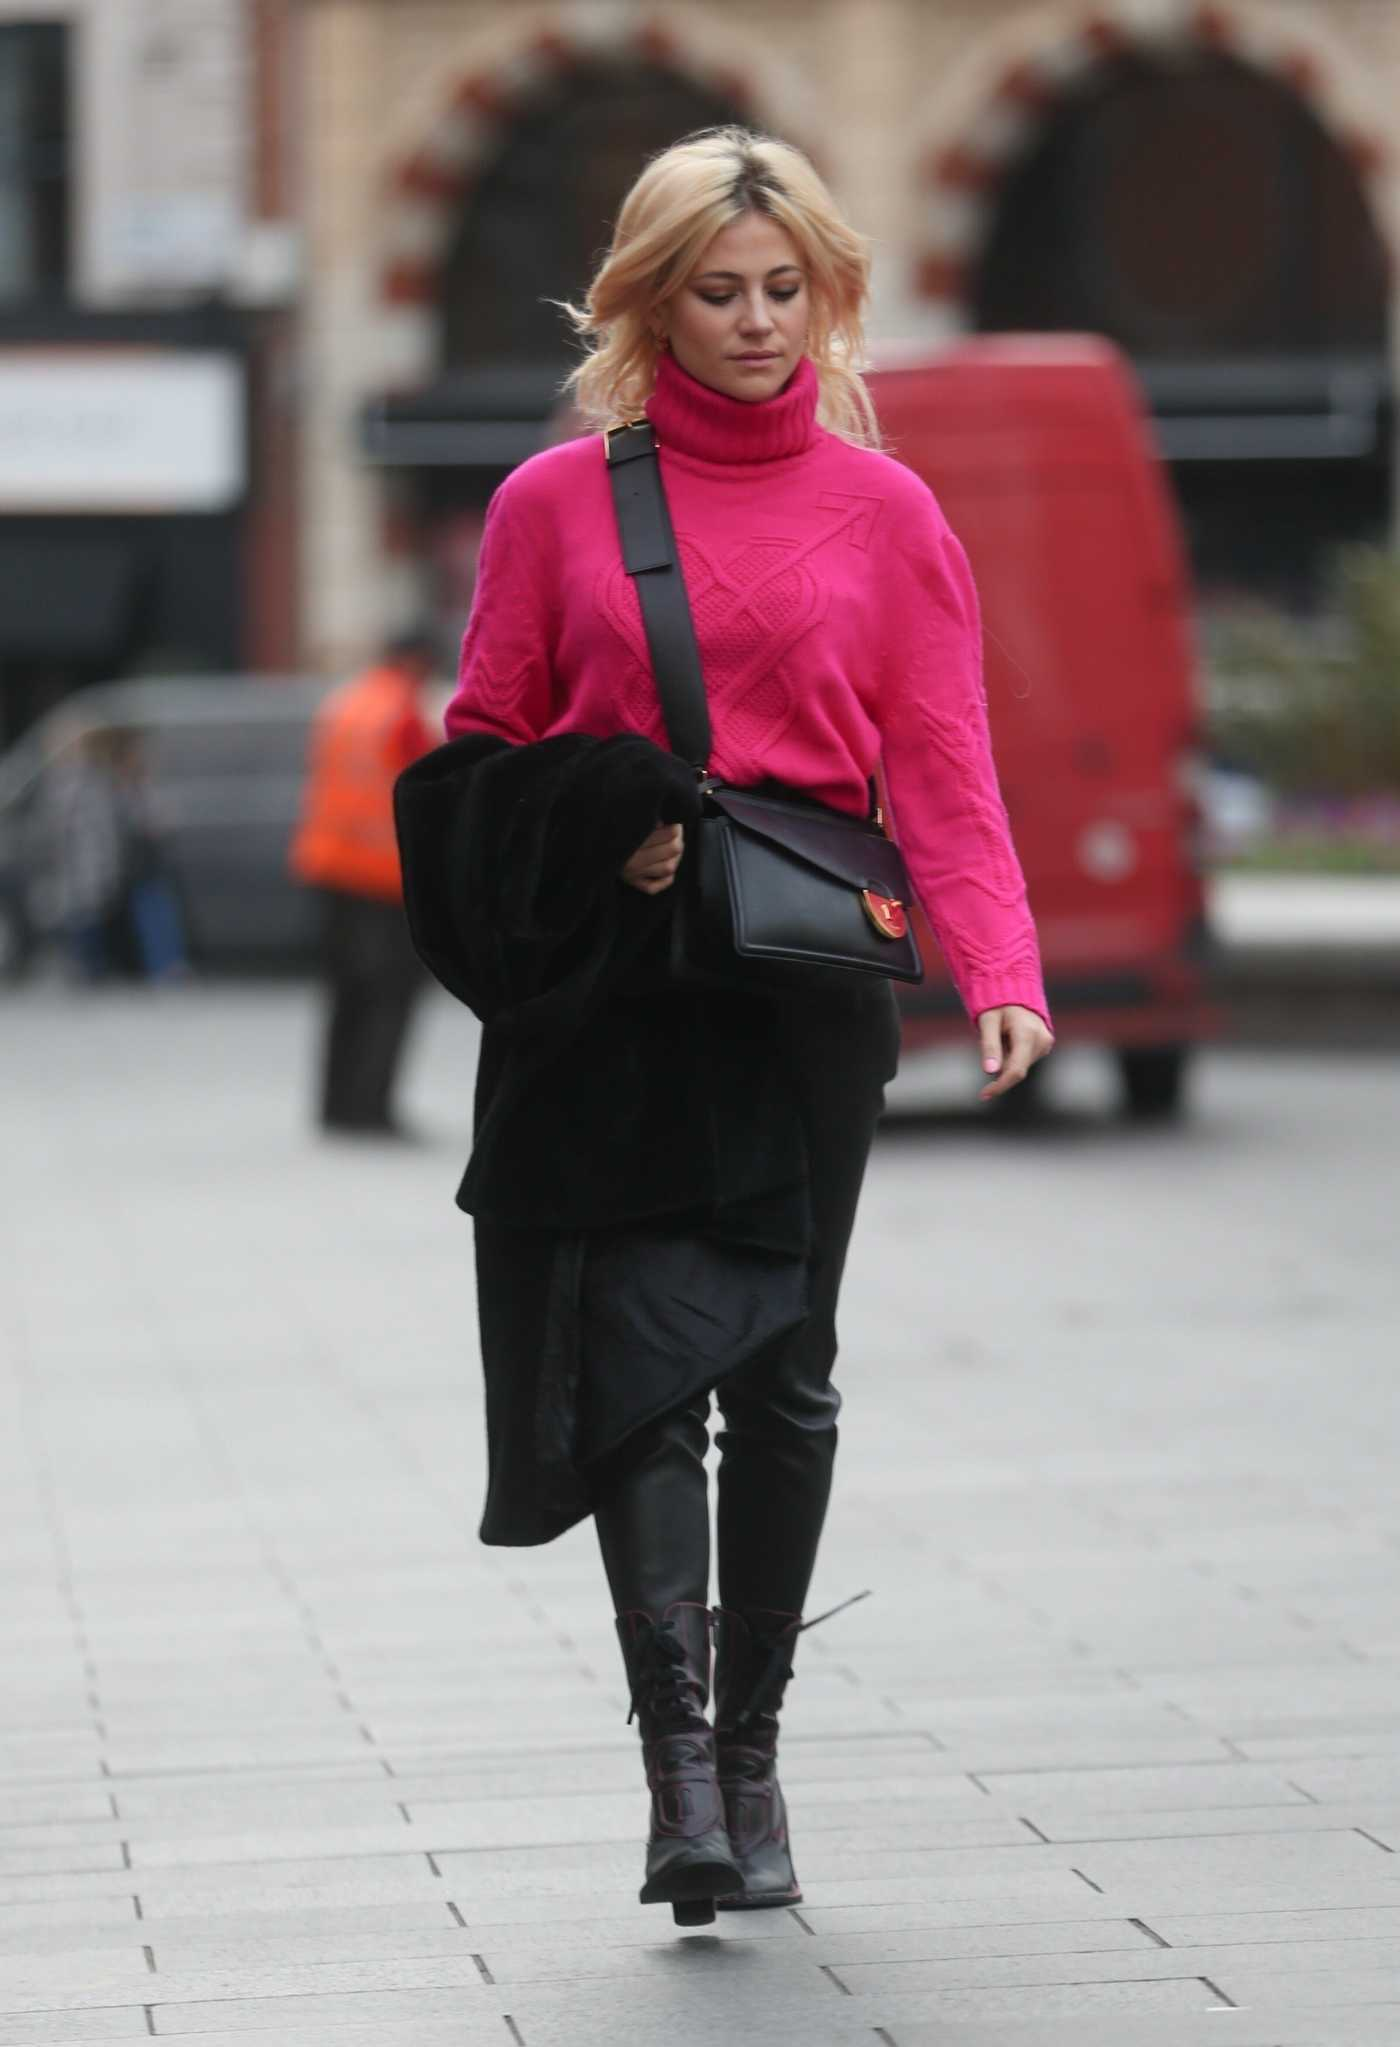 Pixie Lott in a Pink Sweater Was Seen Out in London 02/13/2019